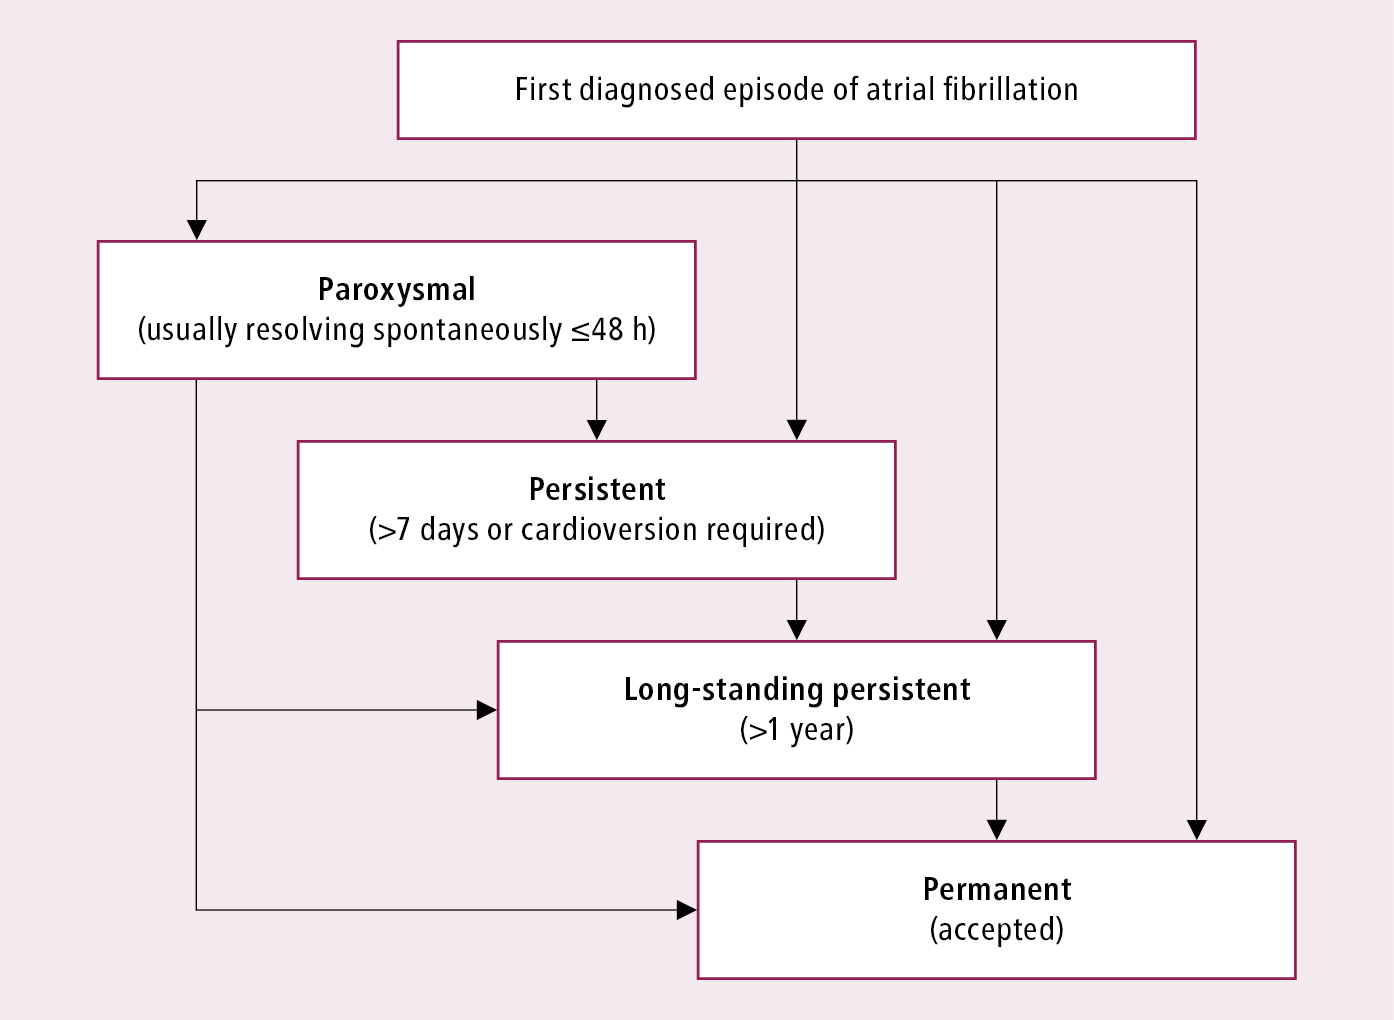 Figure 031_2581.  Classification of atrial fibrillation.  Based on the 2010 European Society of Cardiology guidelines.